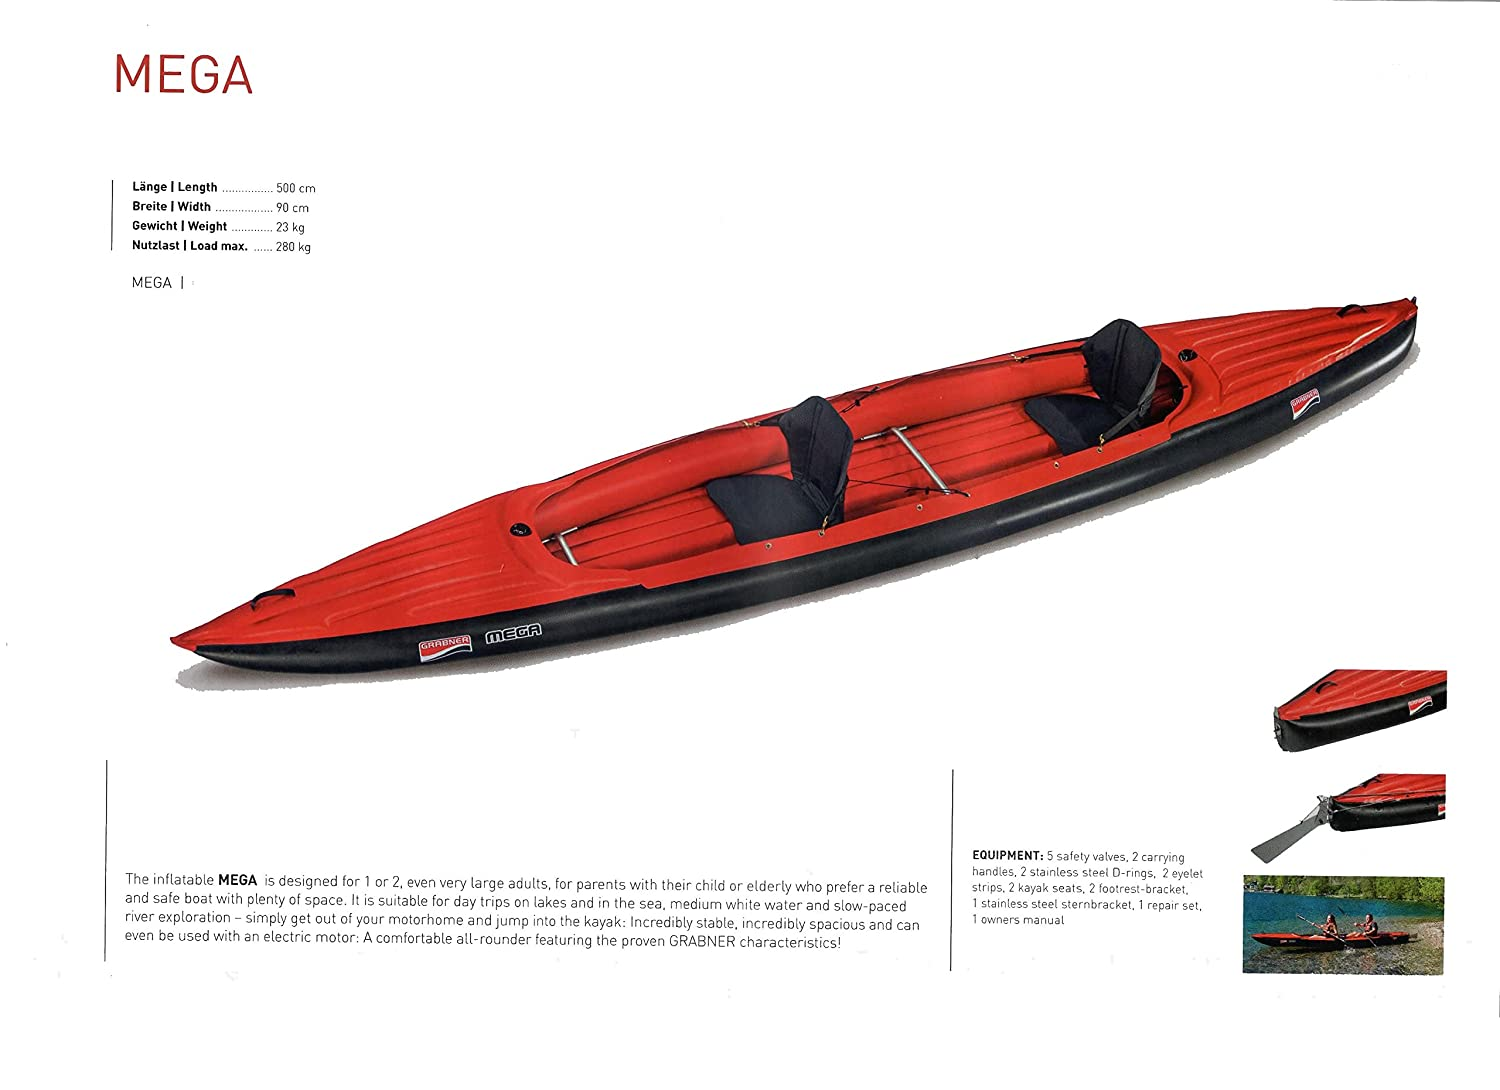 Kayak Water Sports Small 100cm Chest Sporting Goods Logical Wild Water Red Life Jacket Canoe Life Jackets & Preservers